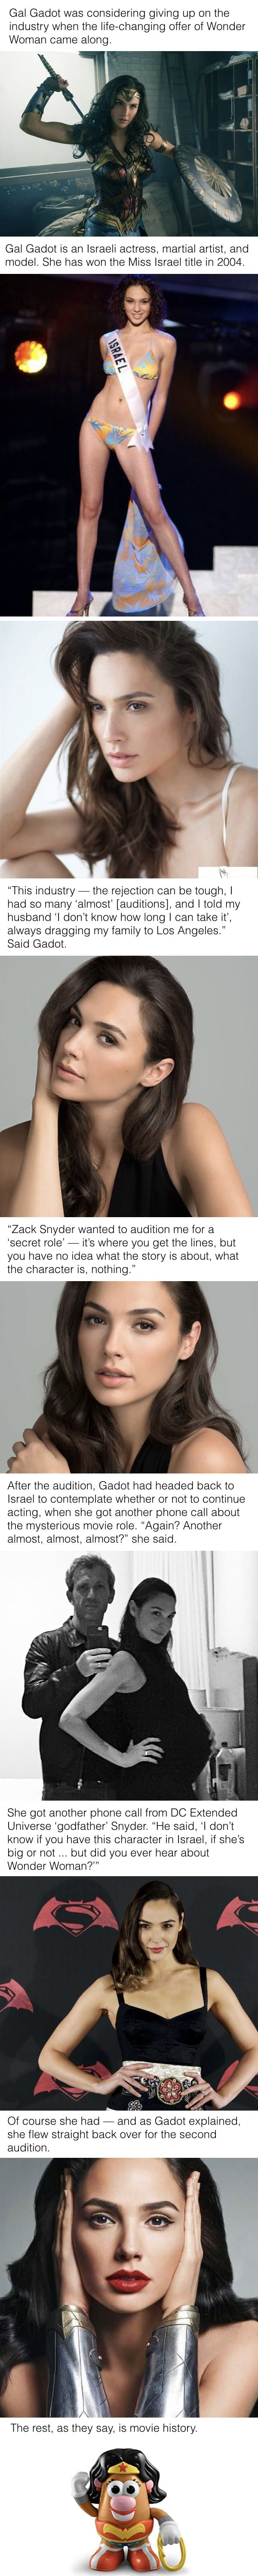 Gal Gadot was considering giving up on acting when the life-changing offer came along.